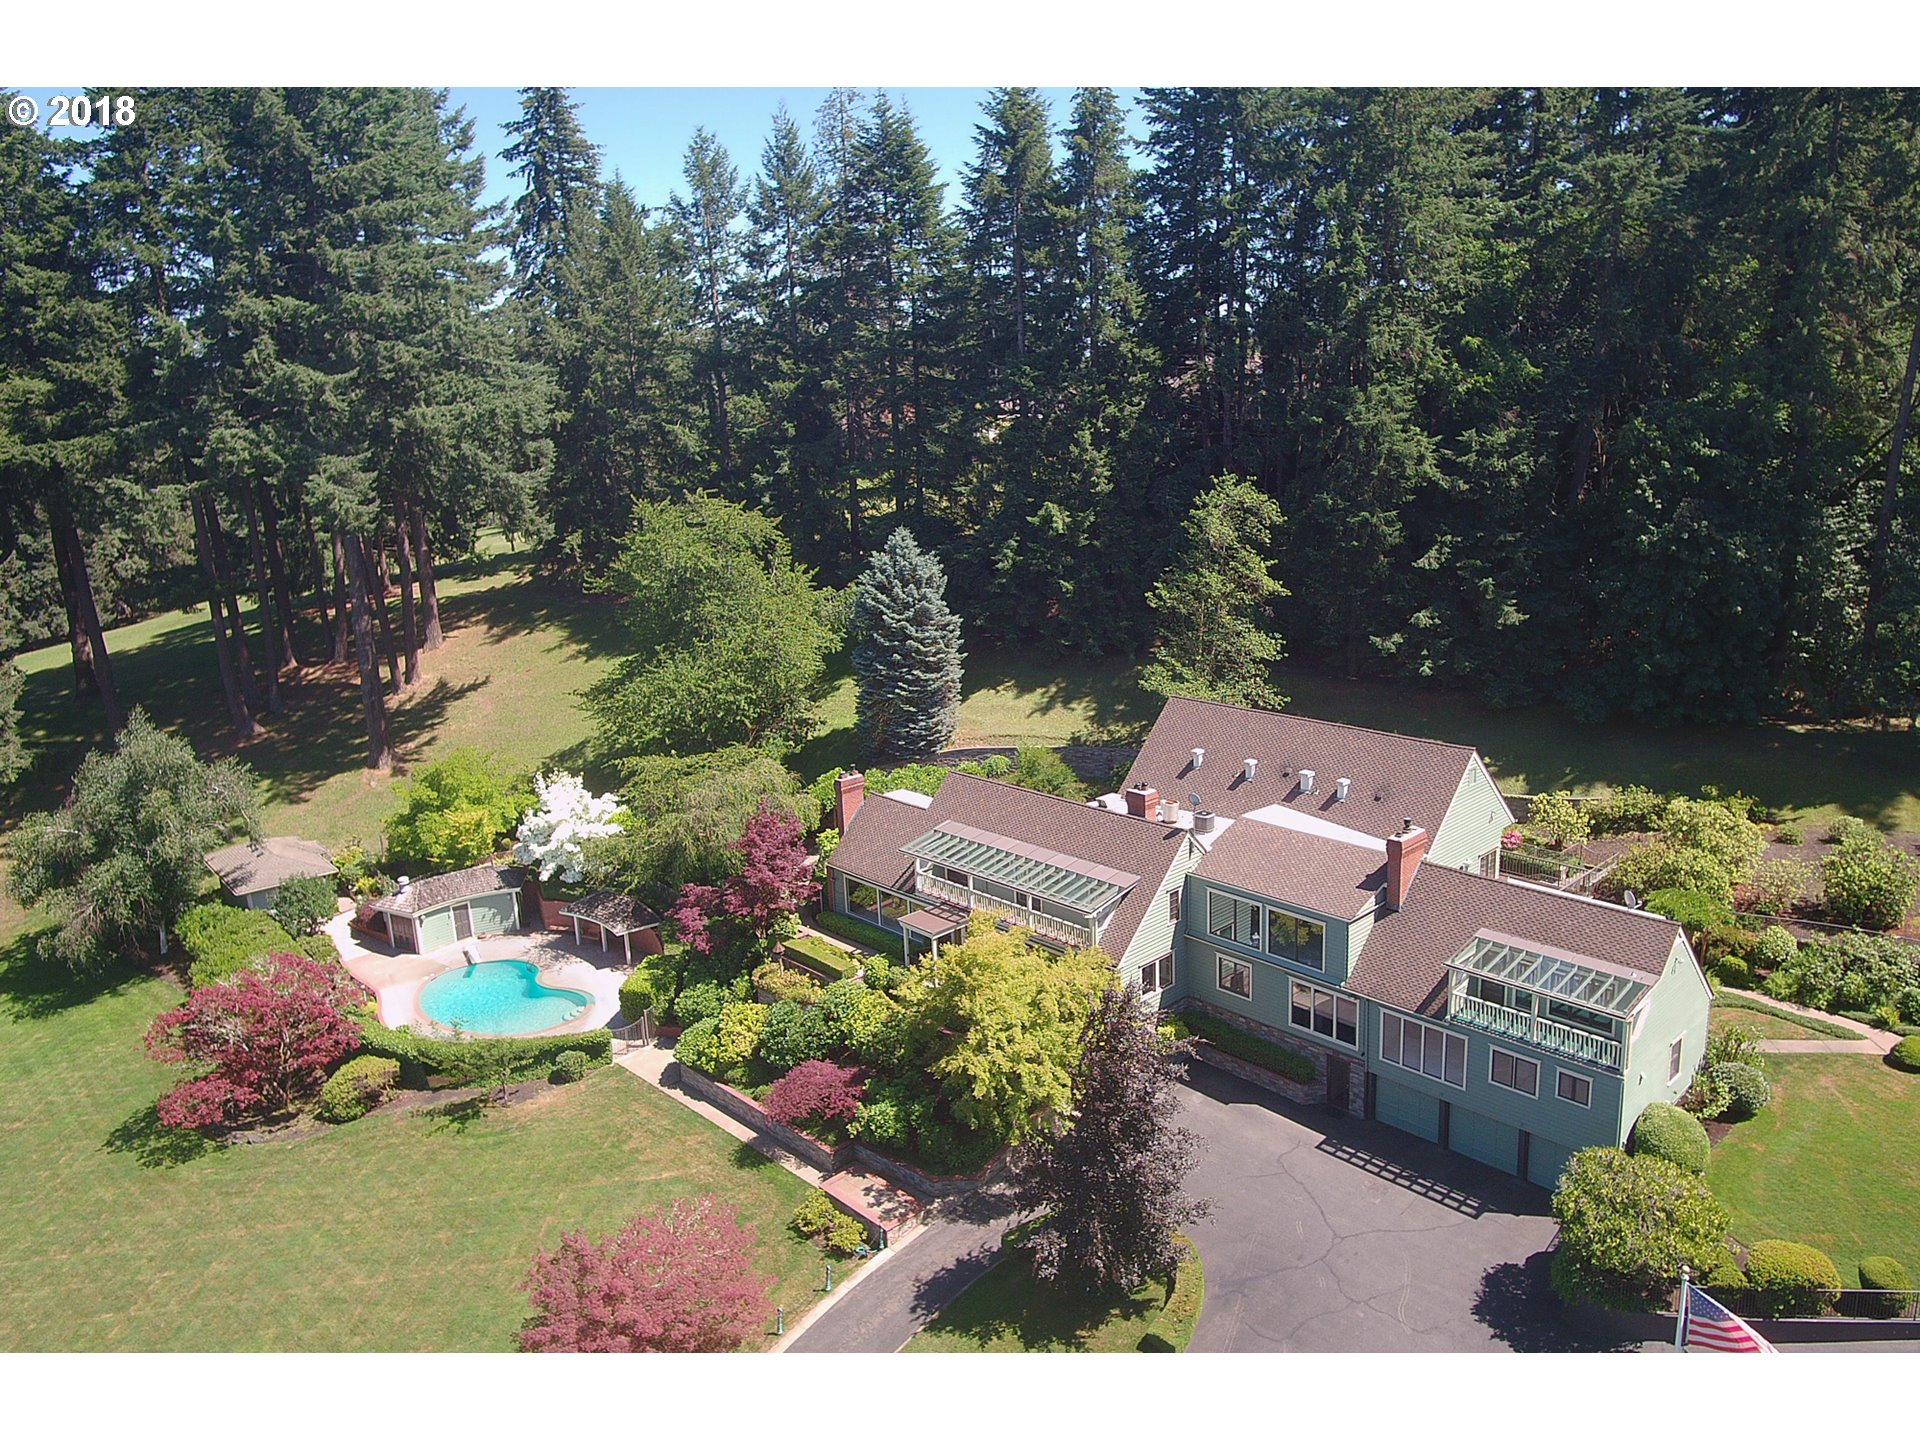 Eugene 7 Bedroom Home For Sale